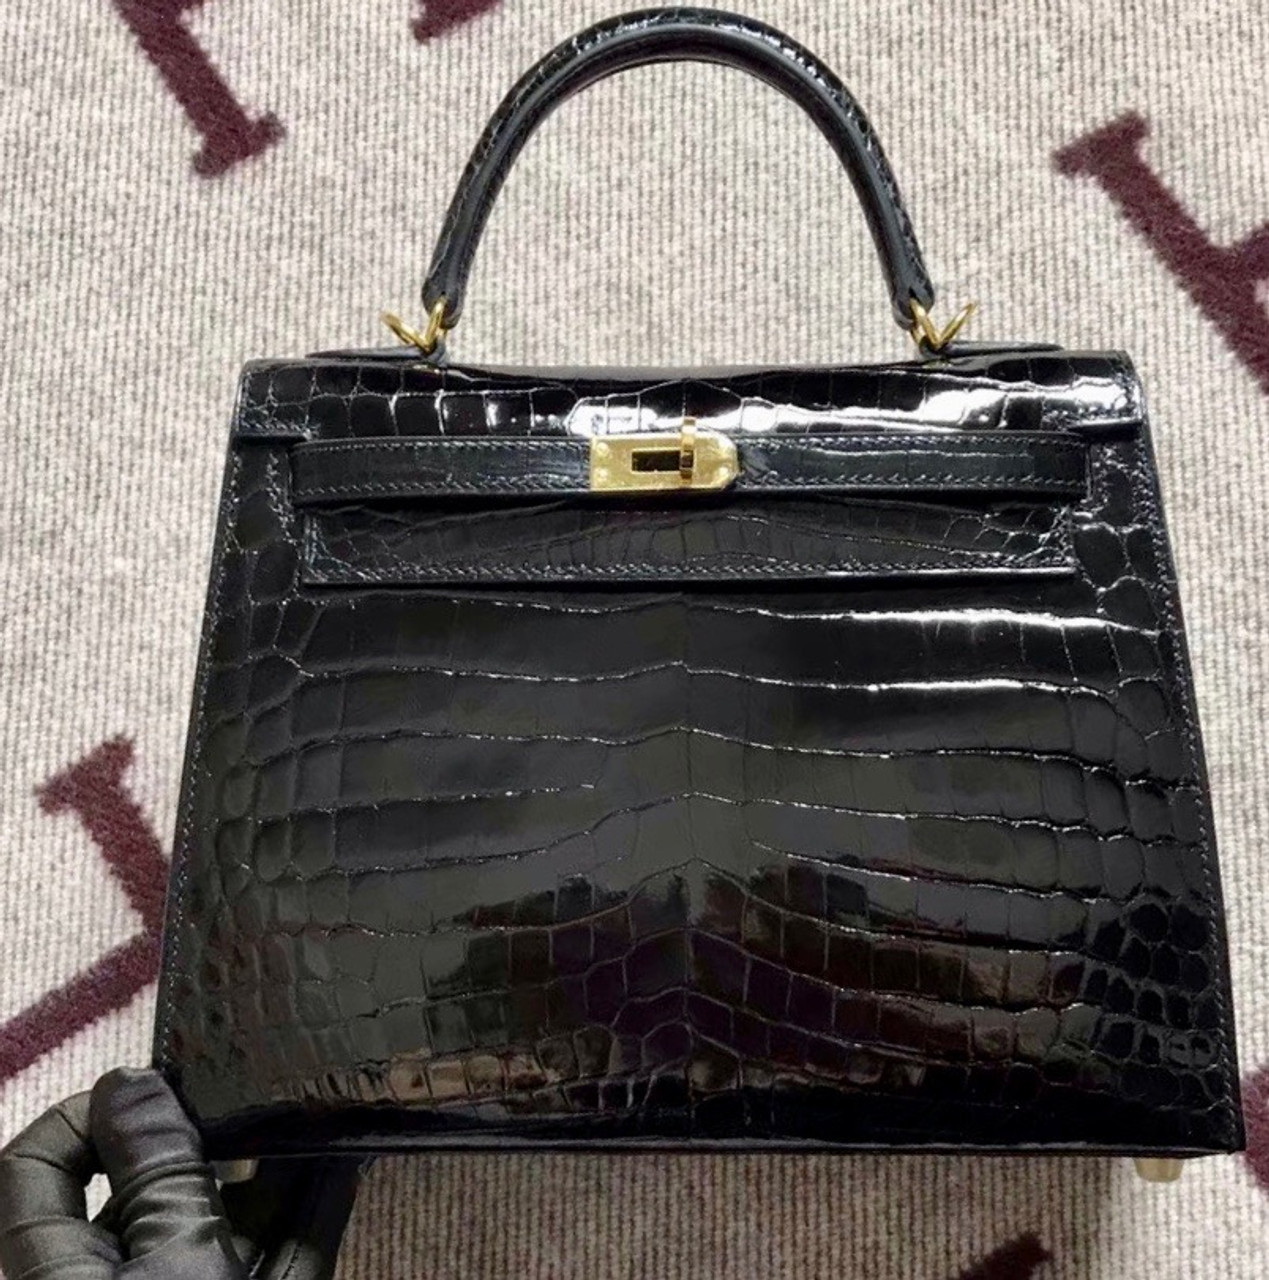 0c010d1433 ... greece hermes shiny black niloticus crocodile kelly 25 with gold  hardware e87cc 6a735